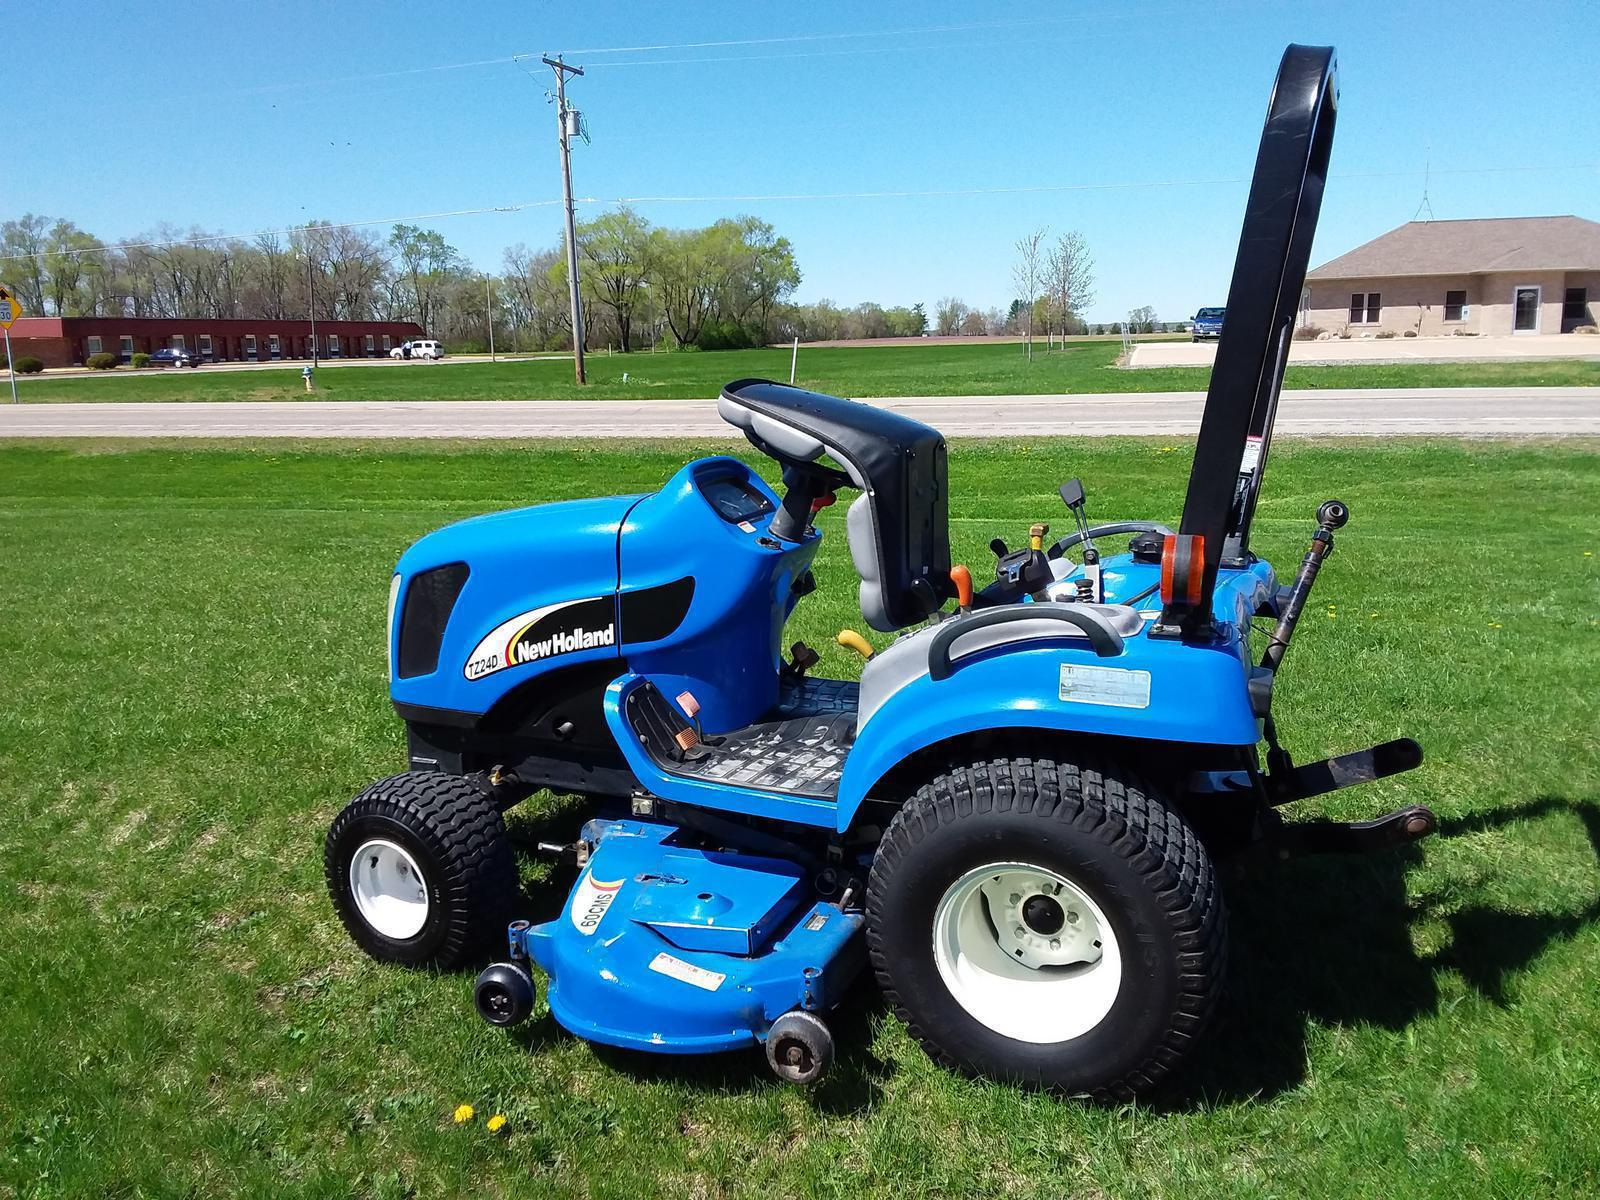 Inventory from New Holland Agriculture Stelter-Hofreiter Havana, IL